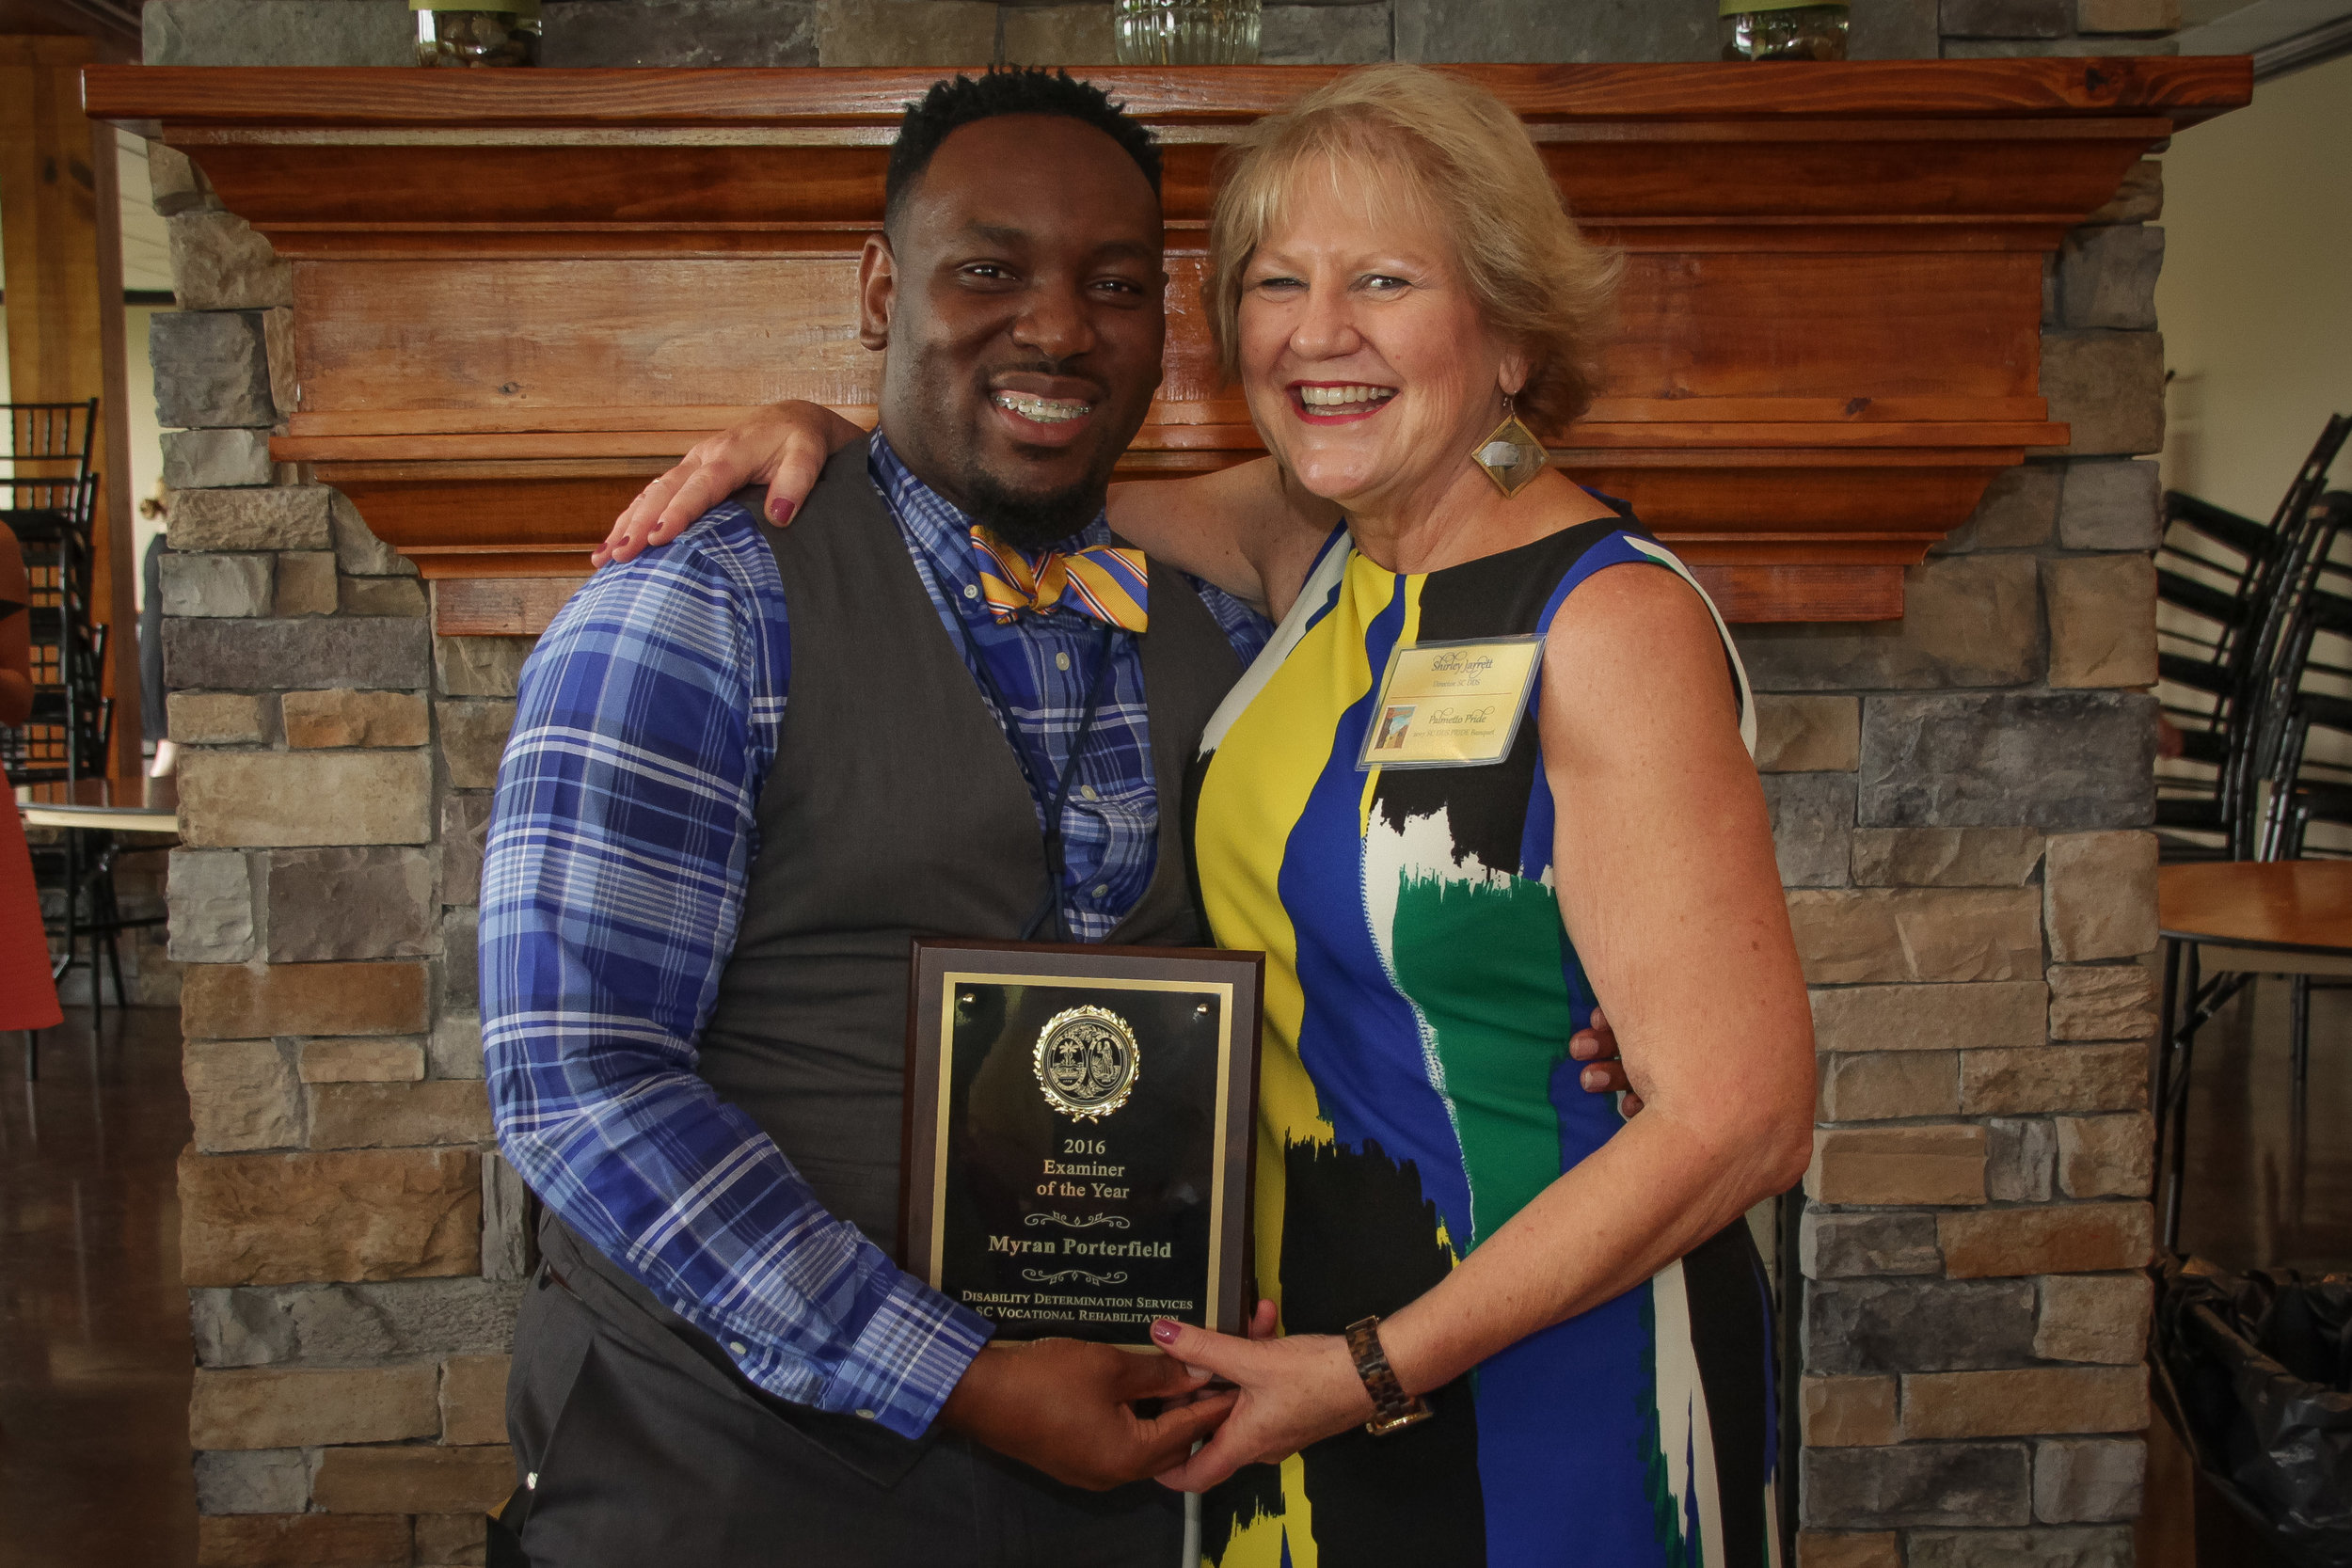 Examiner of the Year  Myran Porterfield - Columbia DDS Shirley Jarrett, Disability Determination Services (DDS) Director